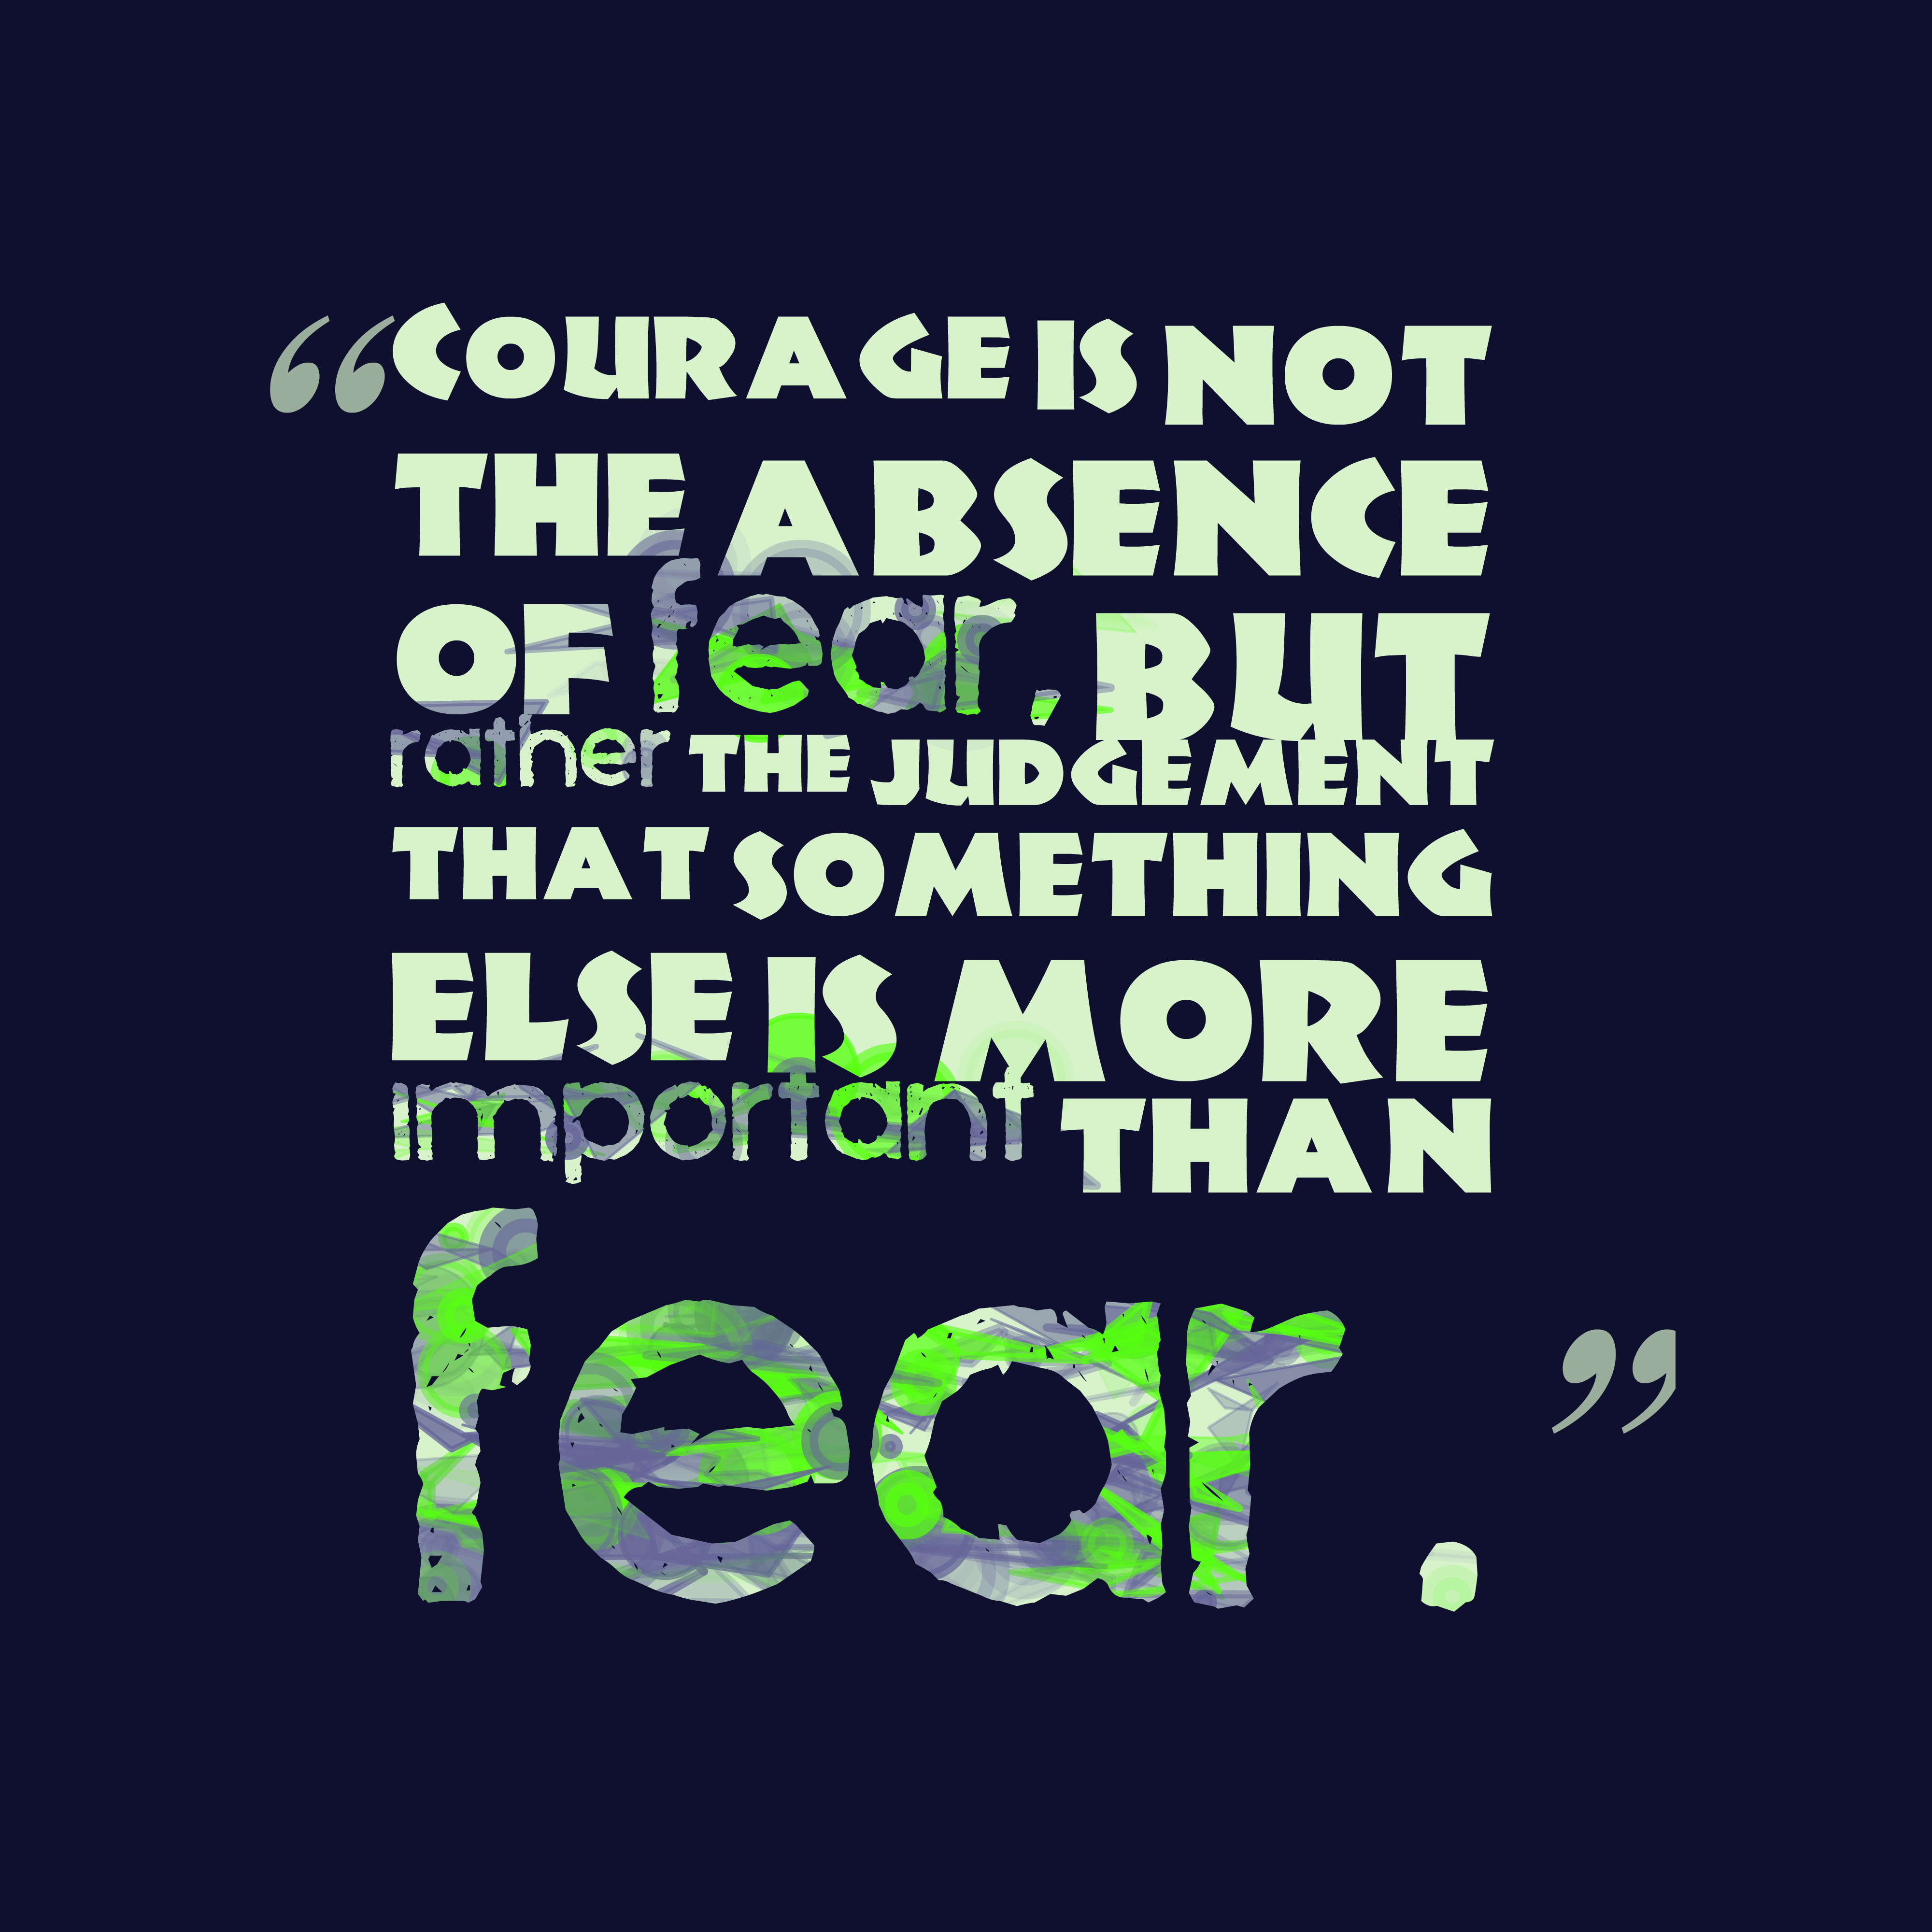 Quotes image of Courage is not the absence of fear, but rather the judgement that something else is more important than fear.